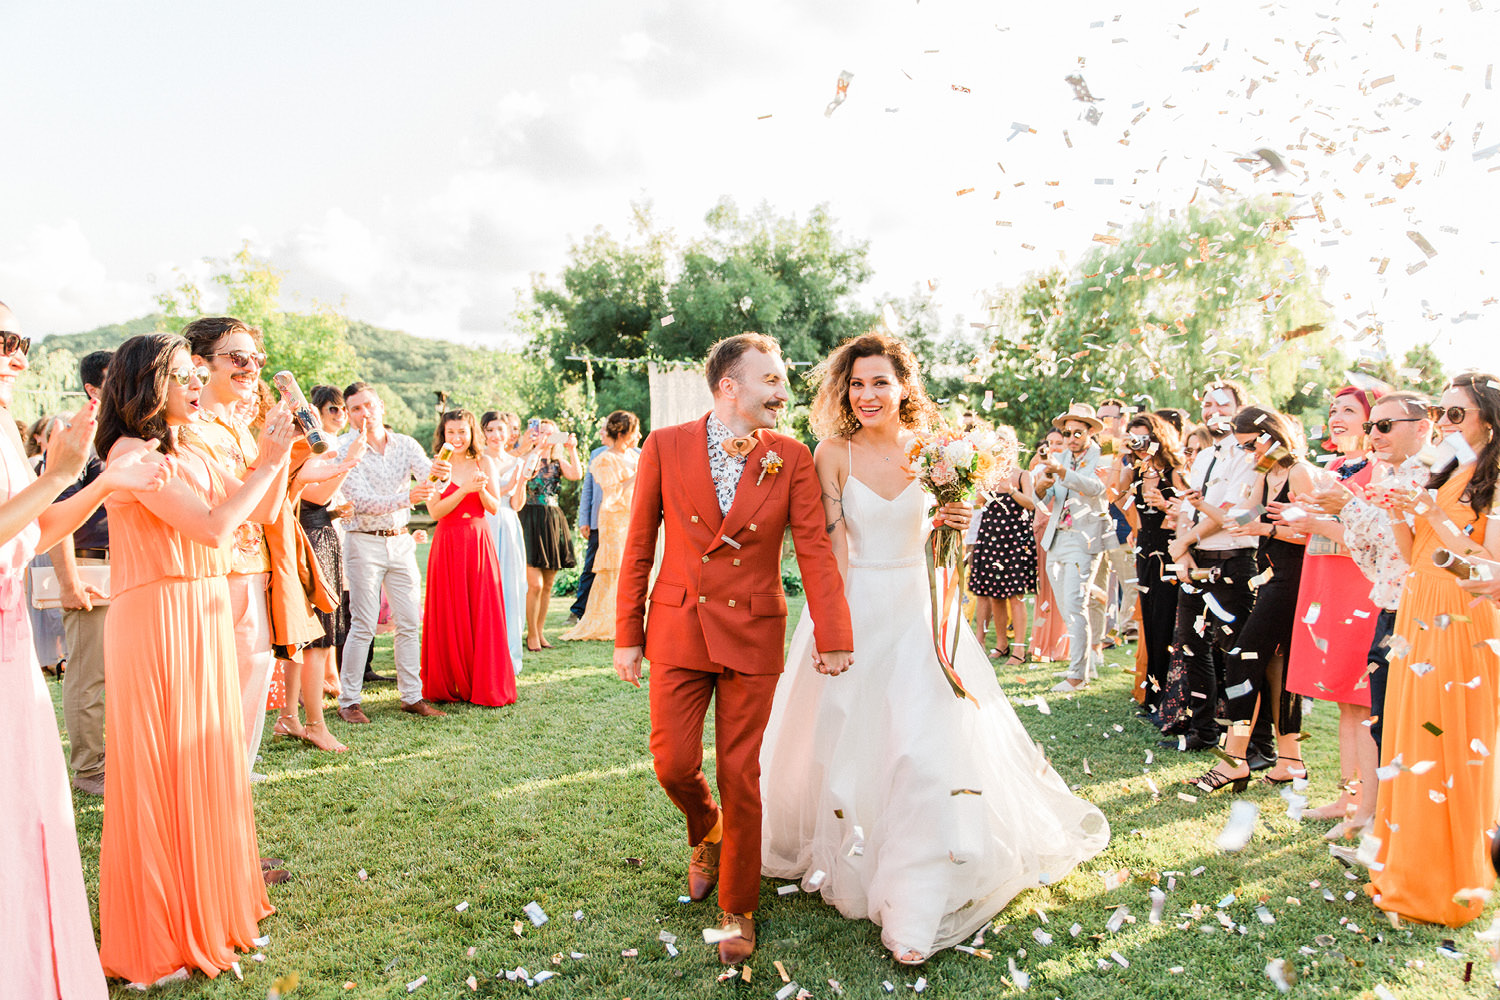 Colorful Countryside Wedding Ceremony